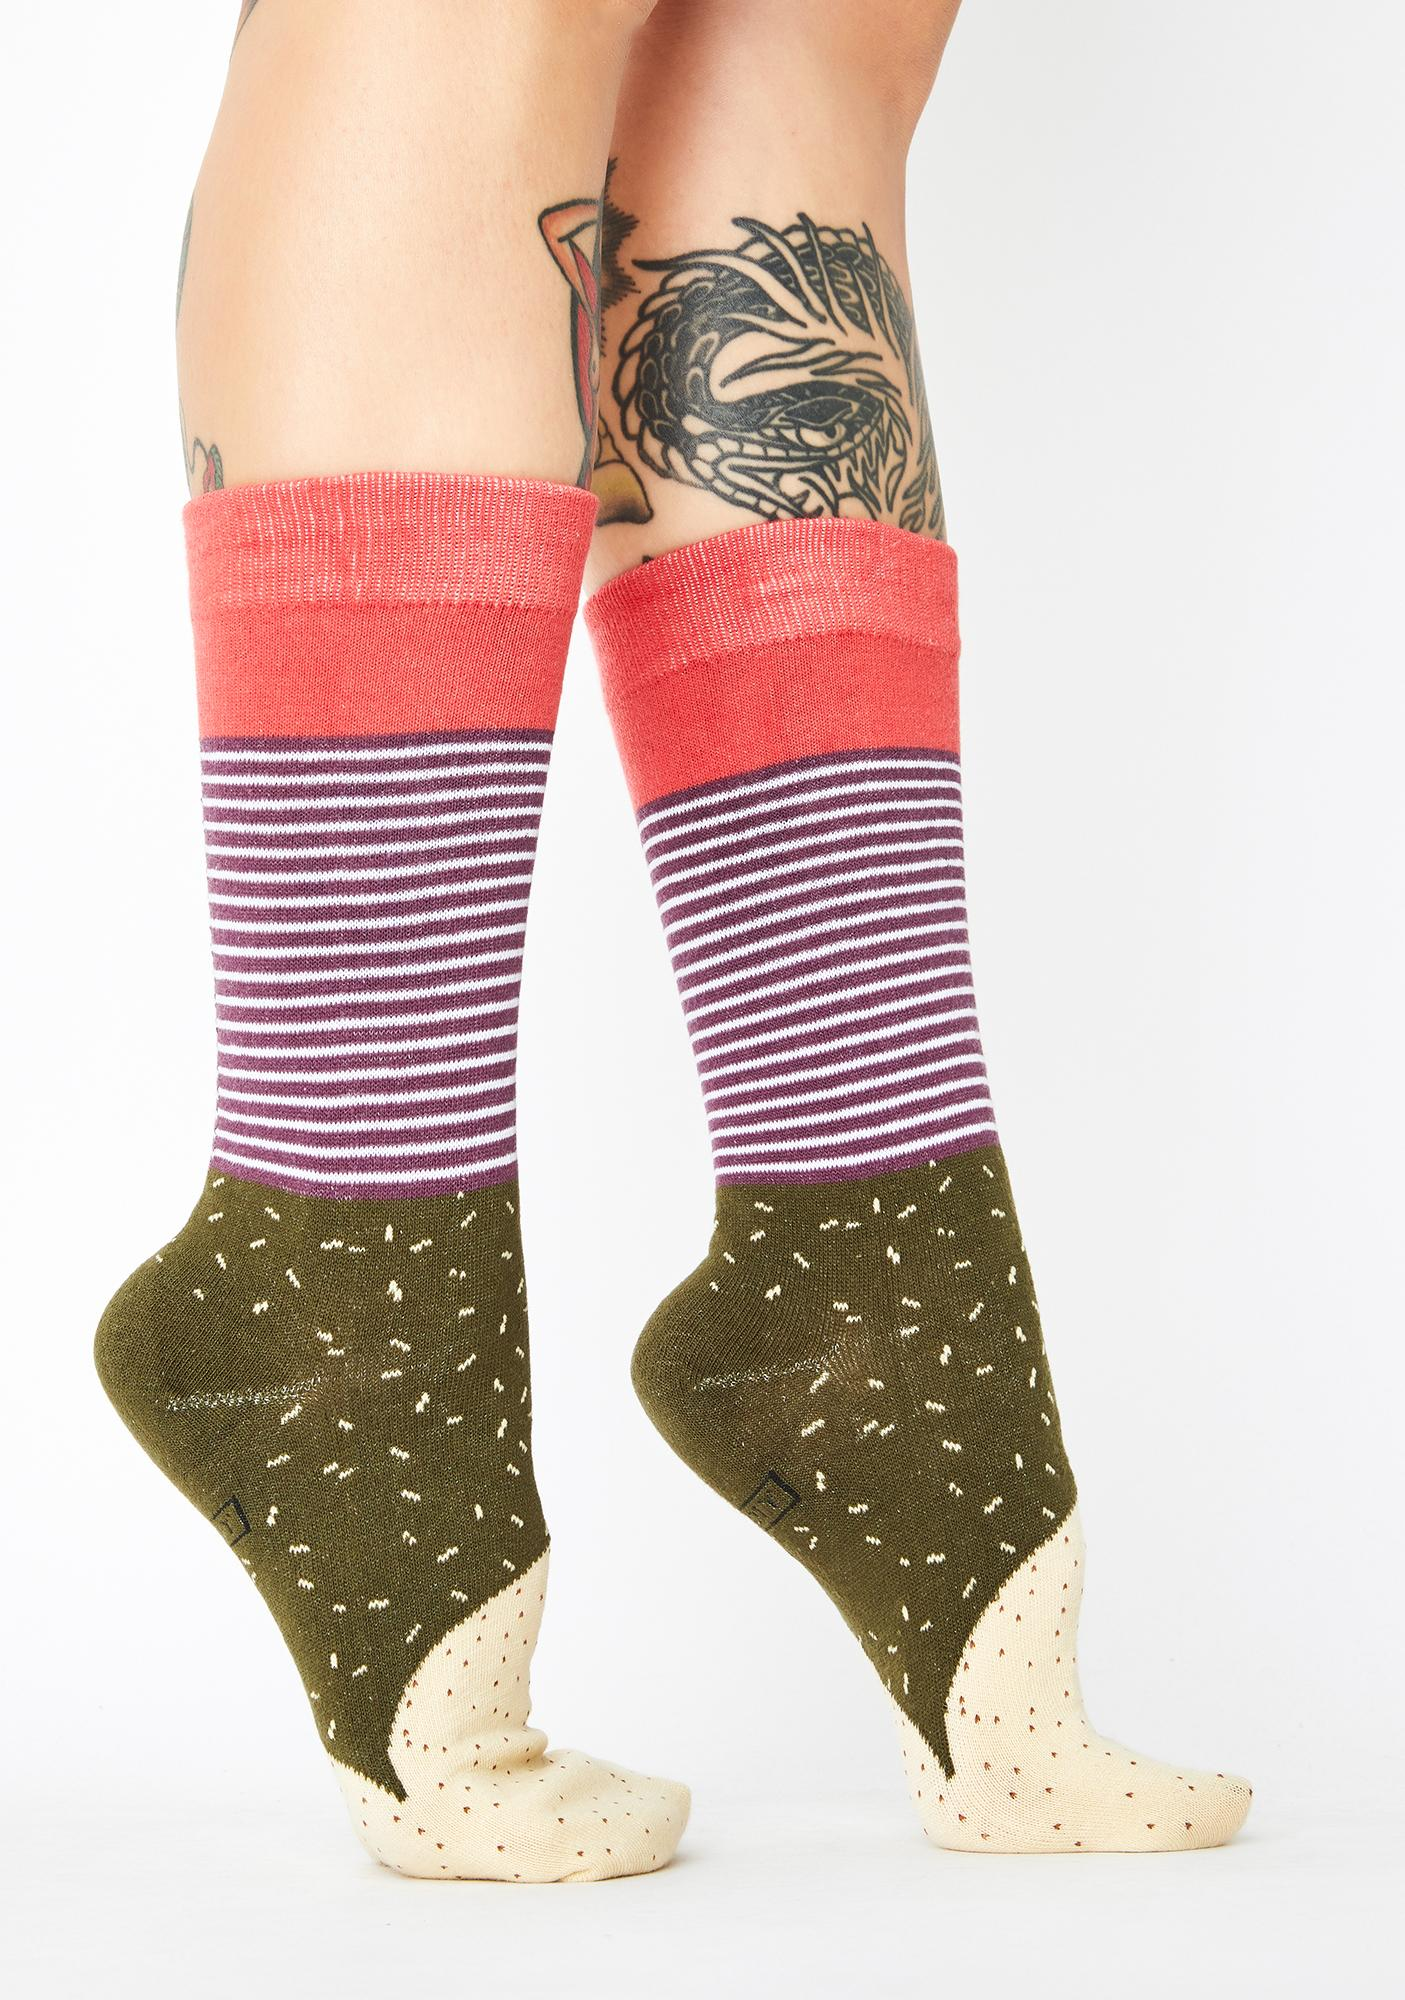 Gangsta Wrap Burrito Socks